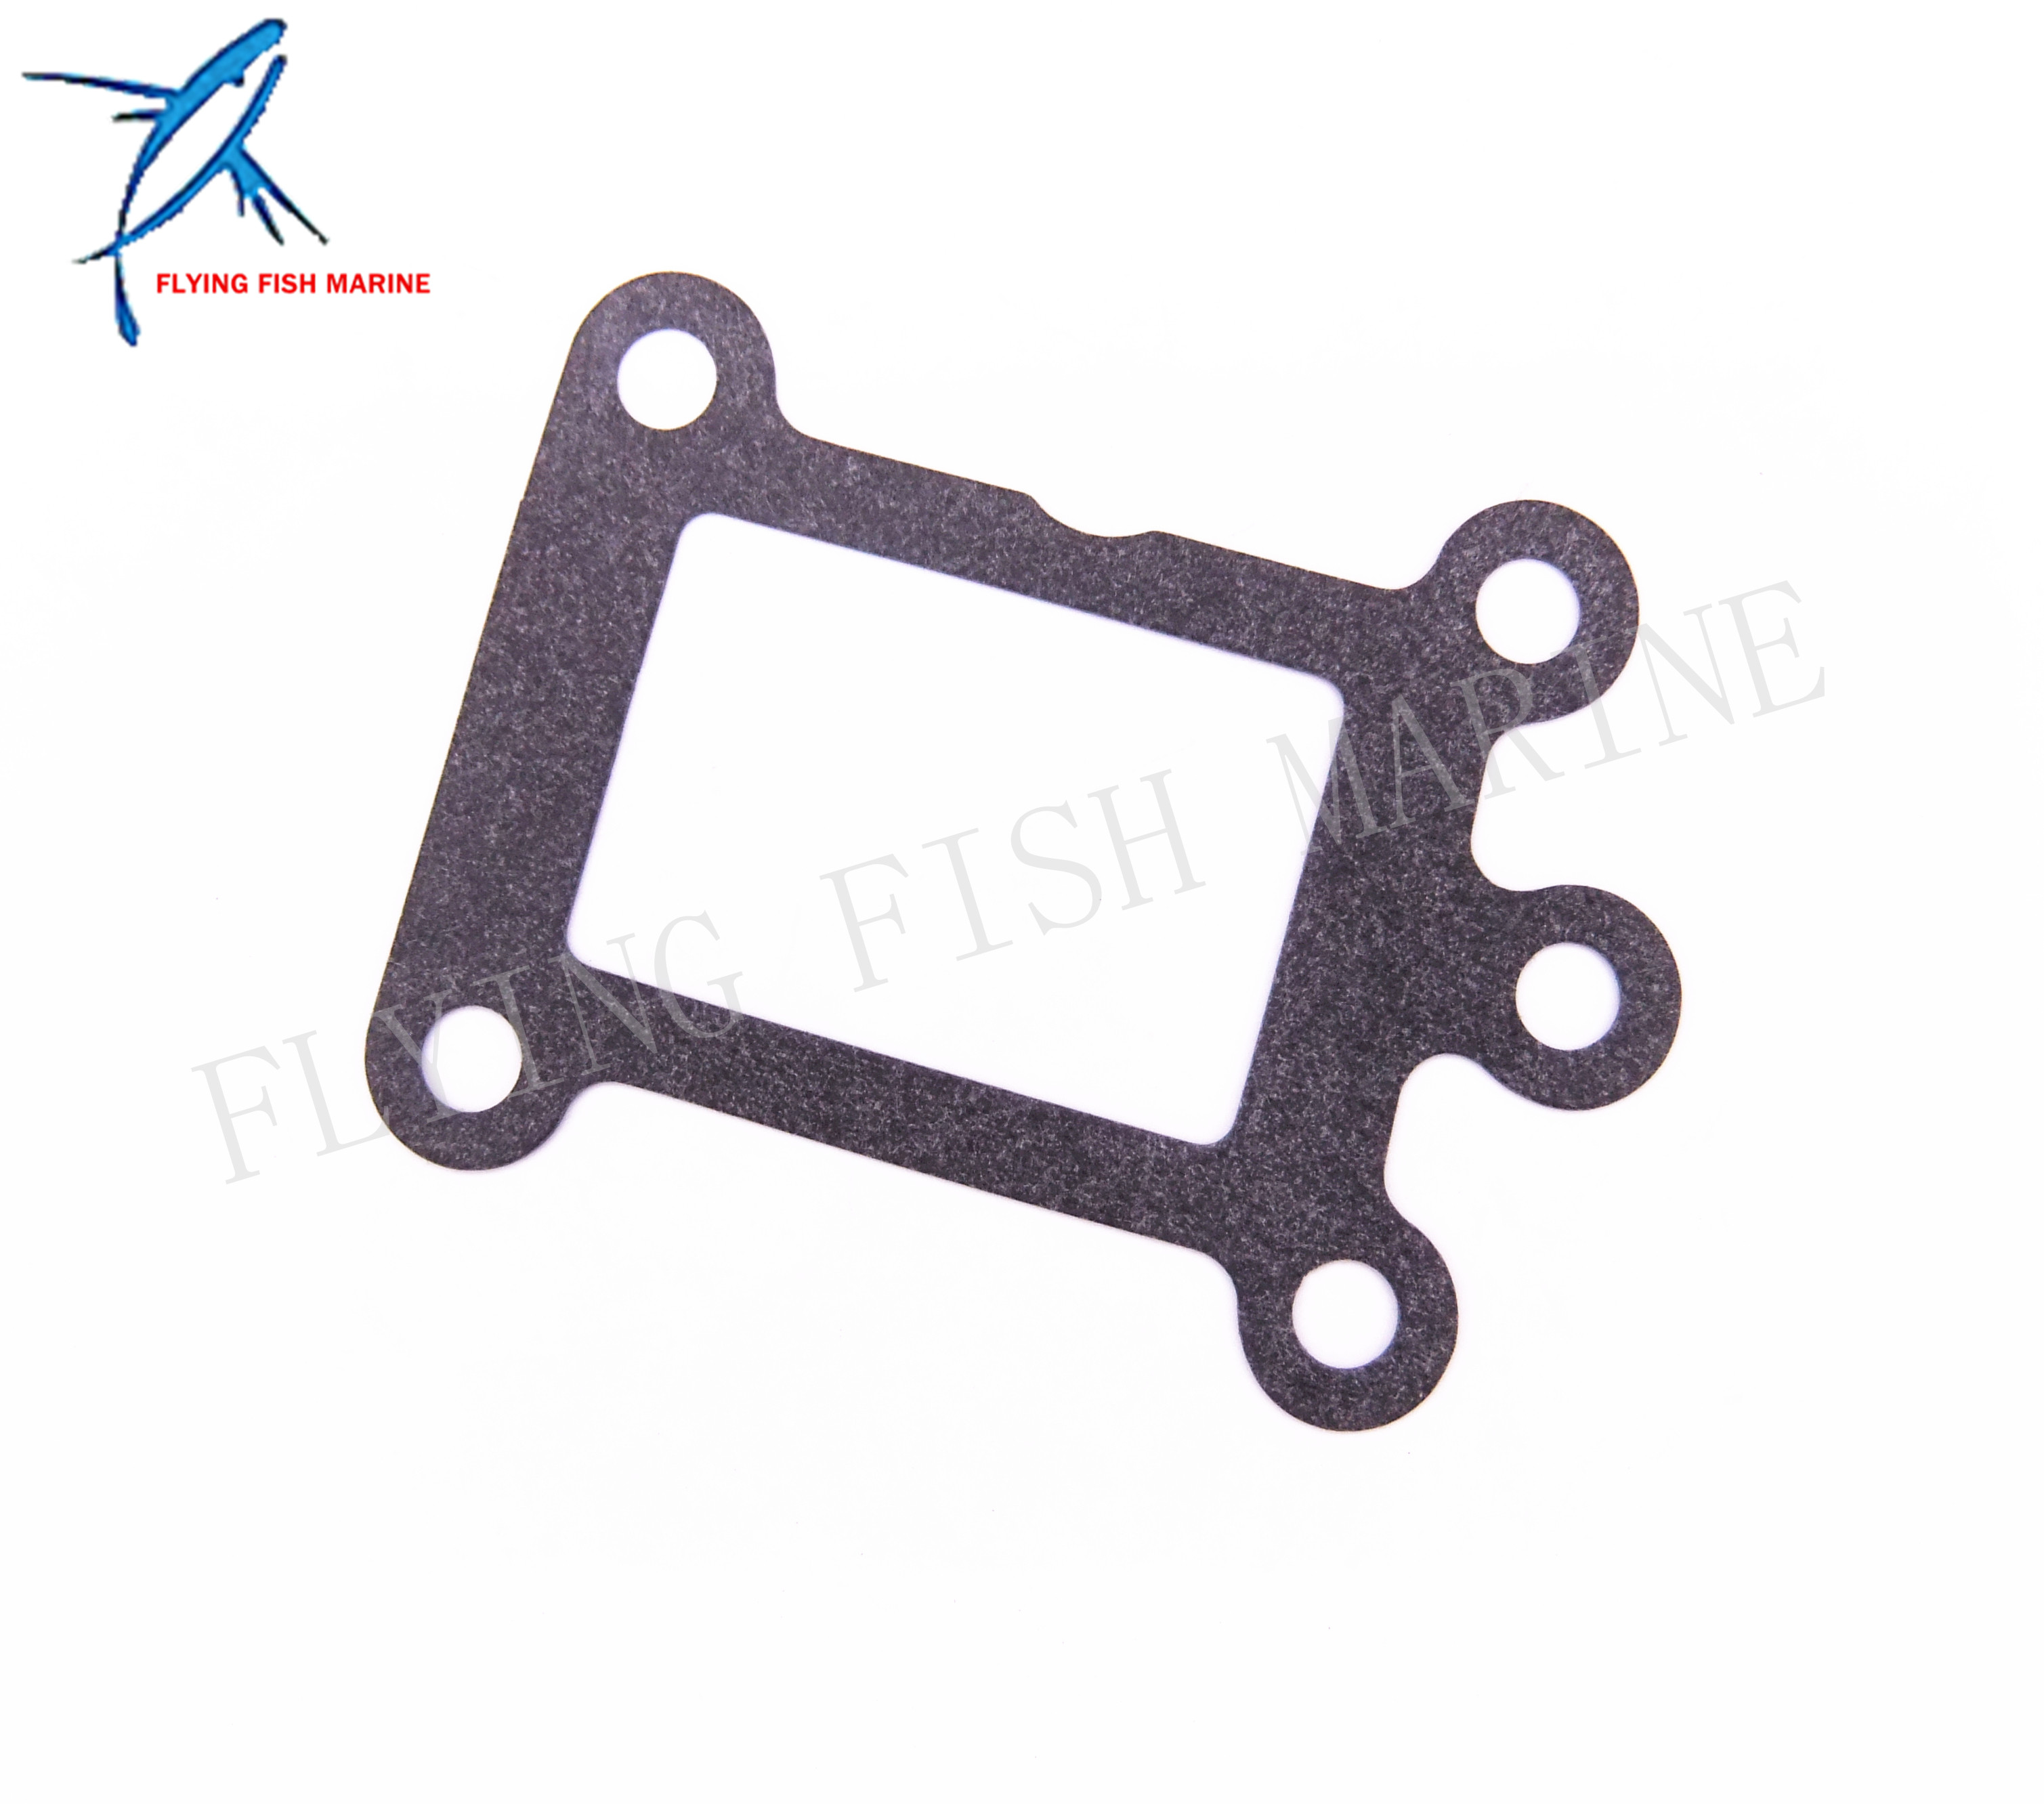 Outboard Engine 2.5F-01.01.00.06 Valve Seat Gasket for Hidea 2-Stroke 2.5F Boat Motor Free Shipping